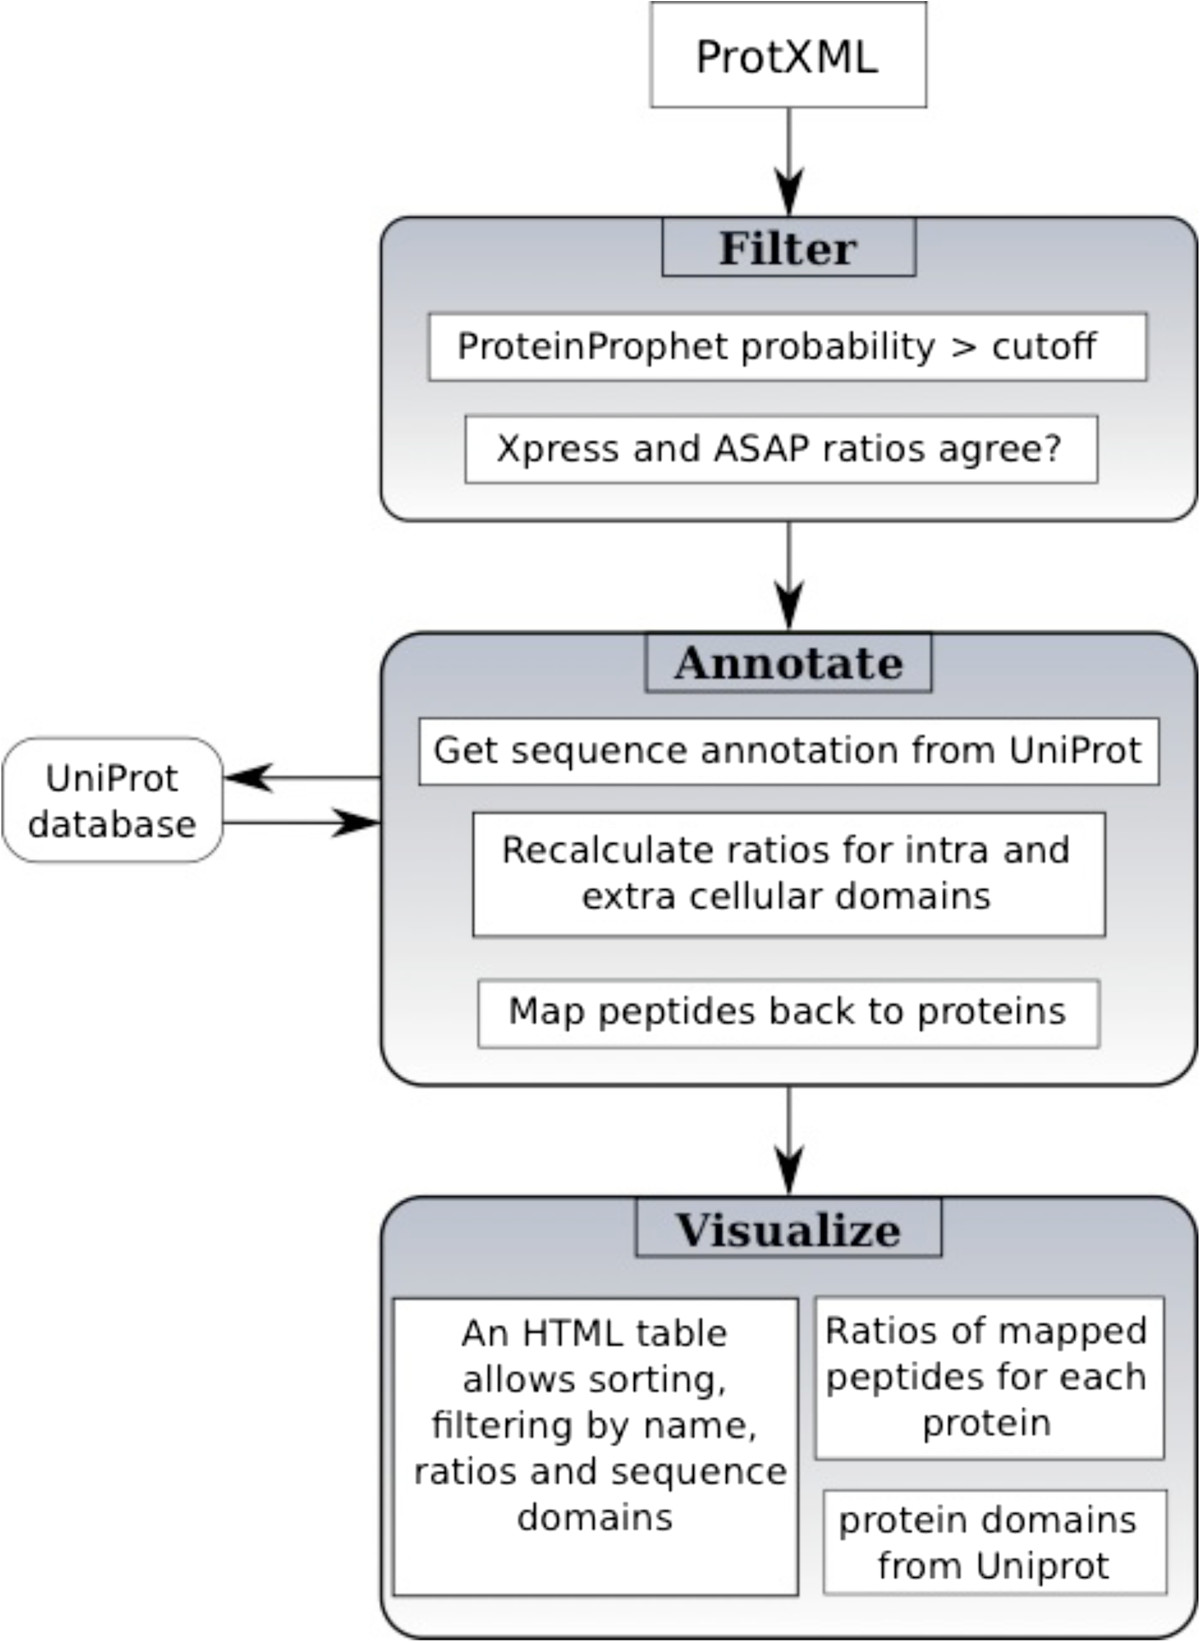 https://static-content.springer.com/image/art%3A10.1186%2F1471-2105-15-207/MediaObjects/12859_2014_Article_6459_Fig1_HTML.jpg